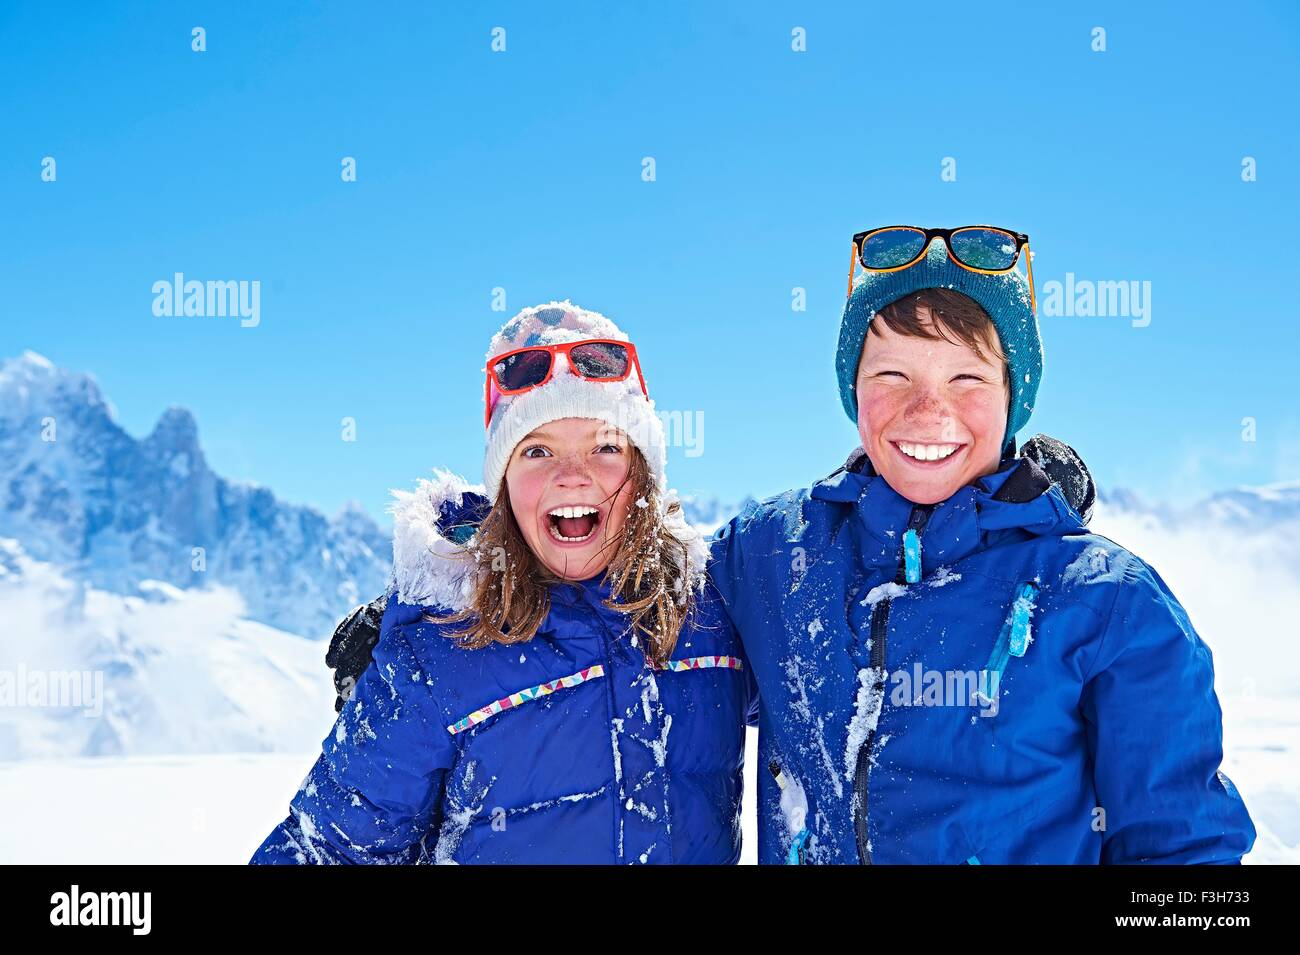 Siblings in winter clothing, Chamonix, France - Stock Image